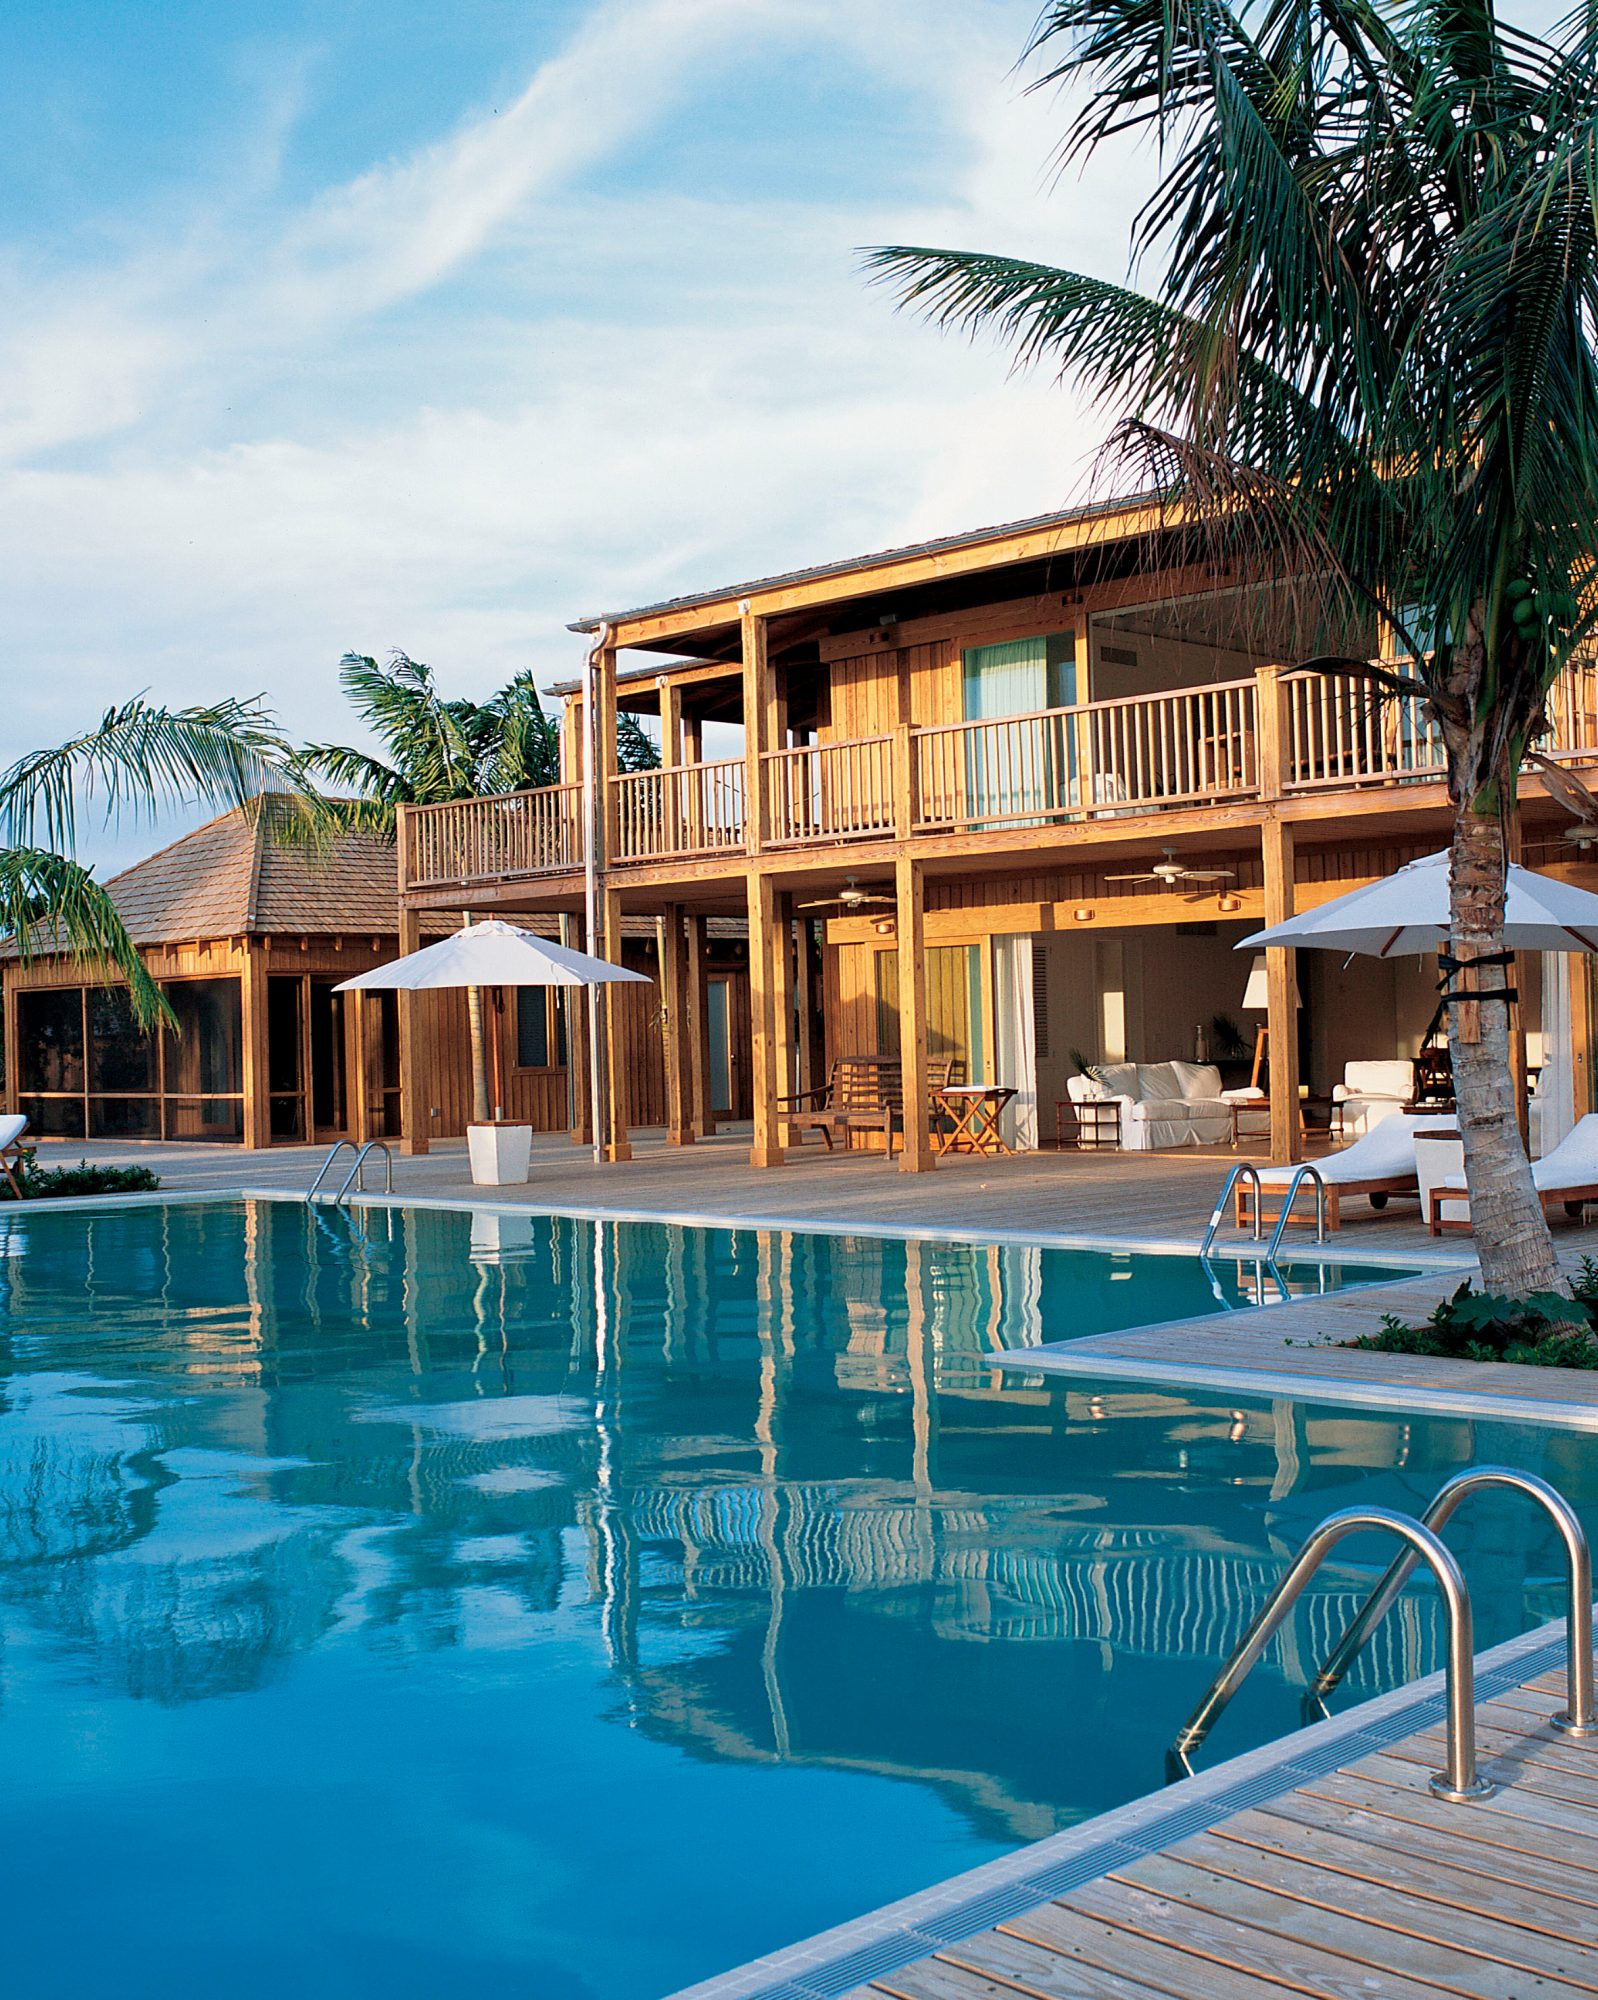 celebrity-wedding-venues-parrot-cay-the-residence-1015.jpg